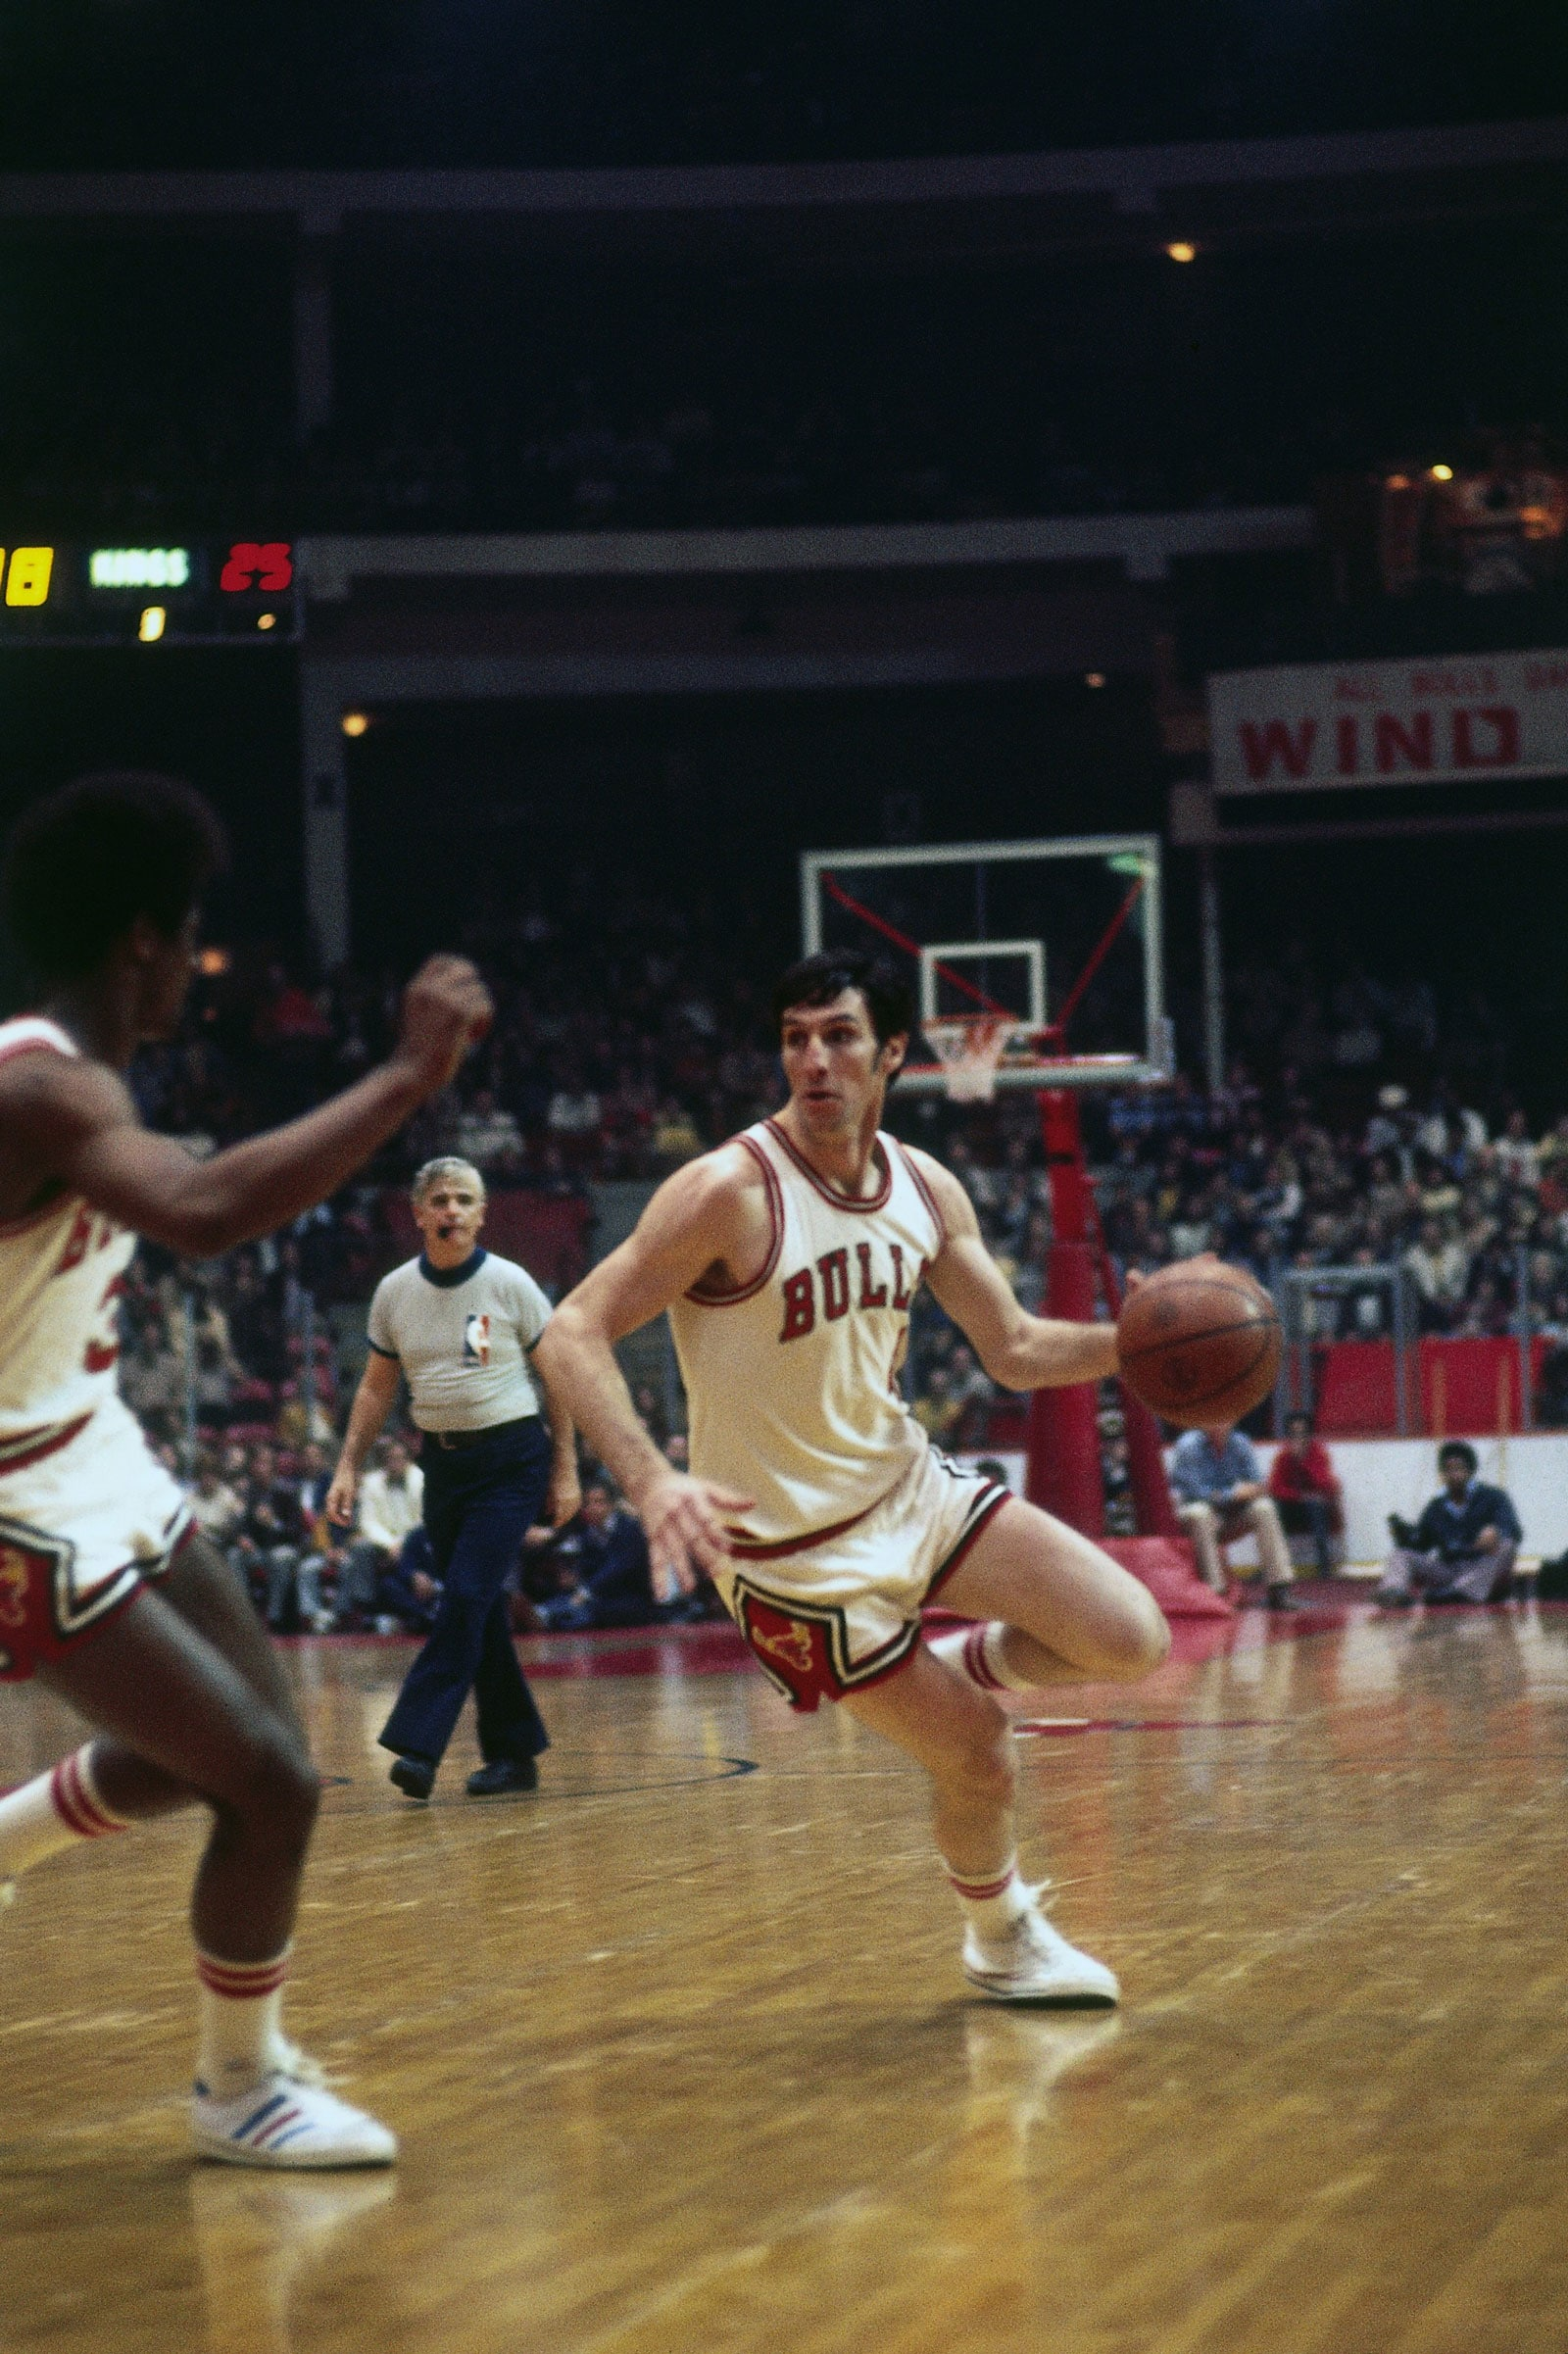 Jerry Sloan #4 of the Chicago Bulls drives the ball up court during a game played in 1975 at Chicago Stadium in Chicago, Illinois.